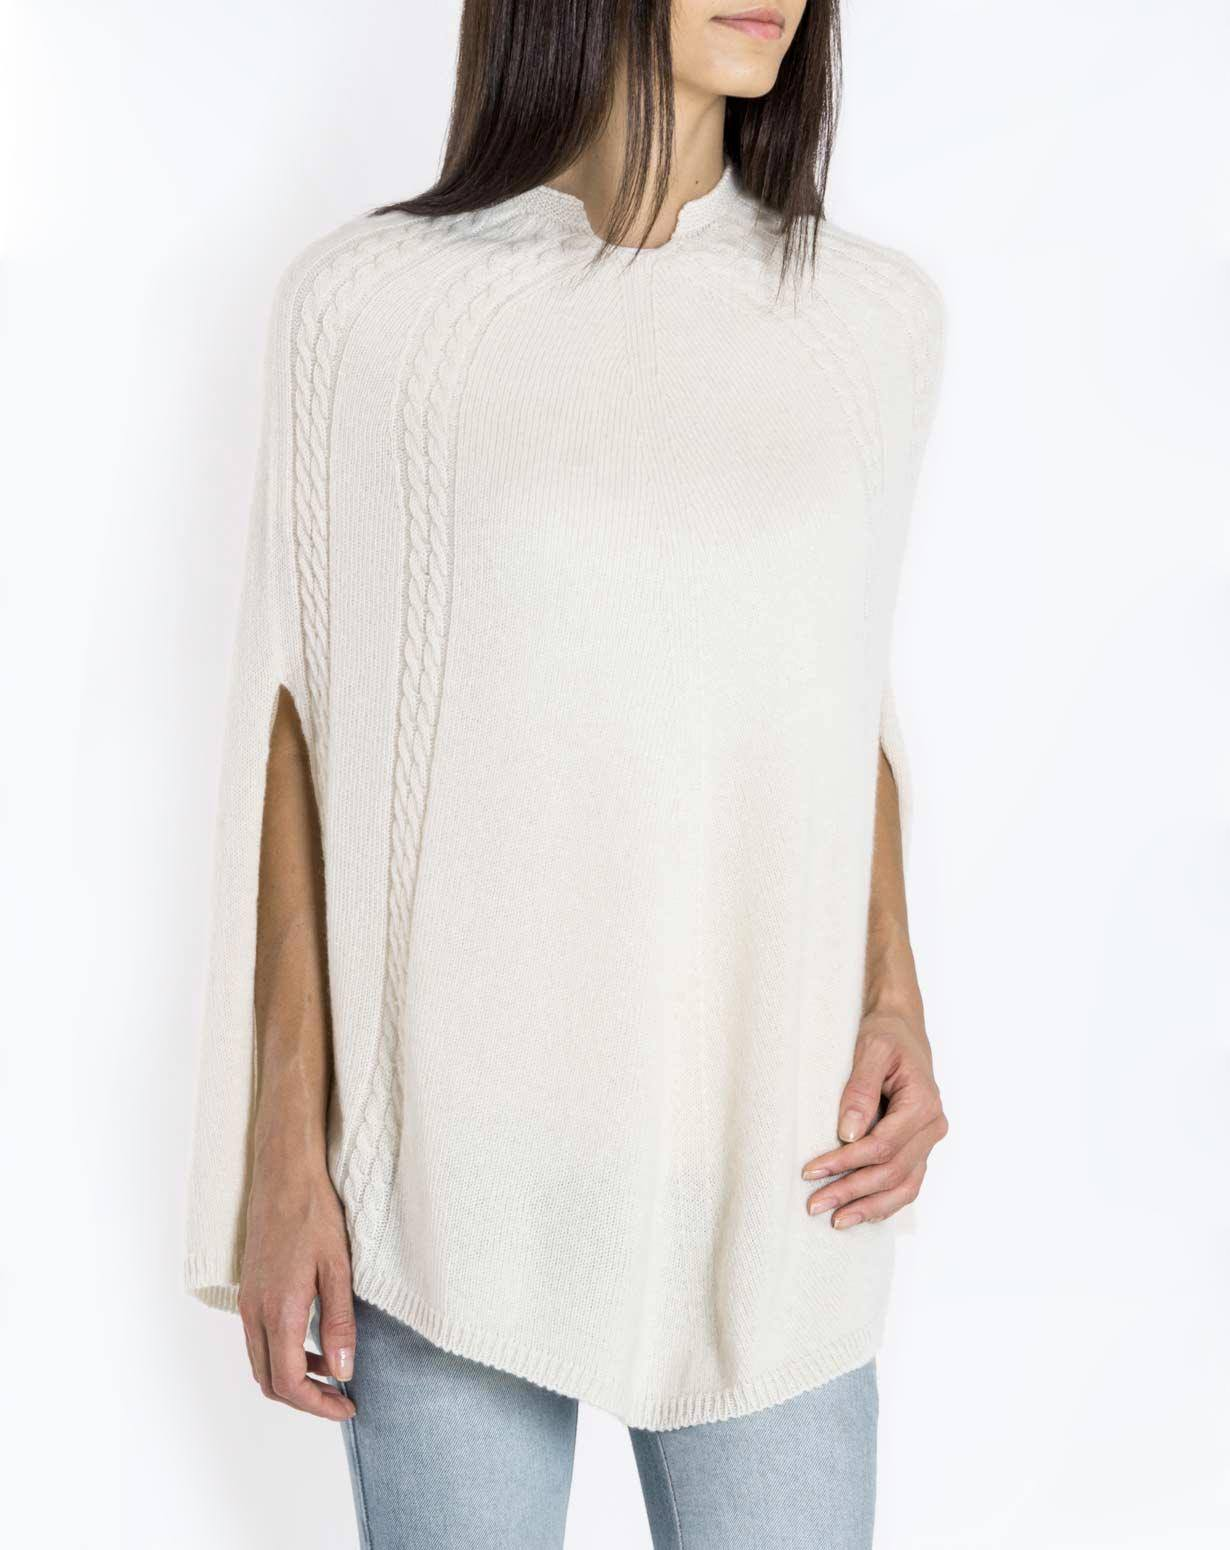 Relatively Women's Pure Cashmere Cable Knit Poncho | MaisonCashmere SD36